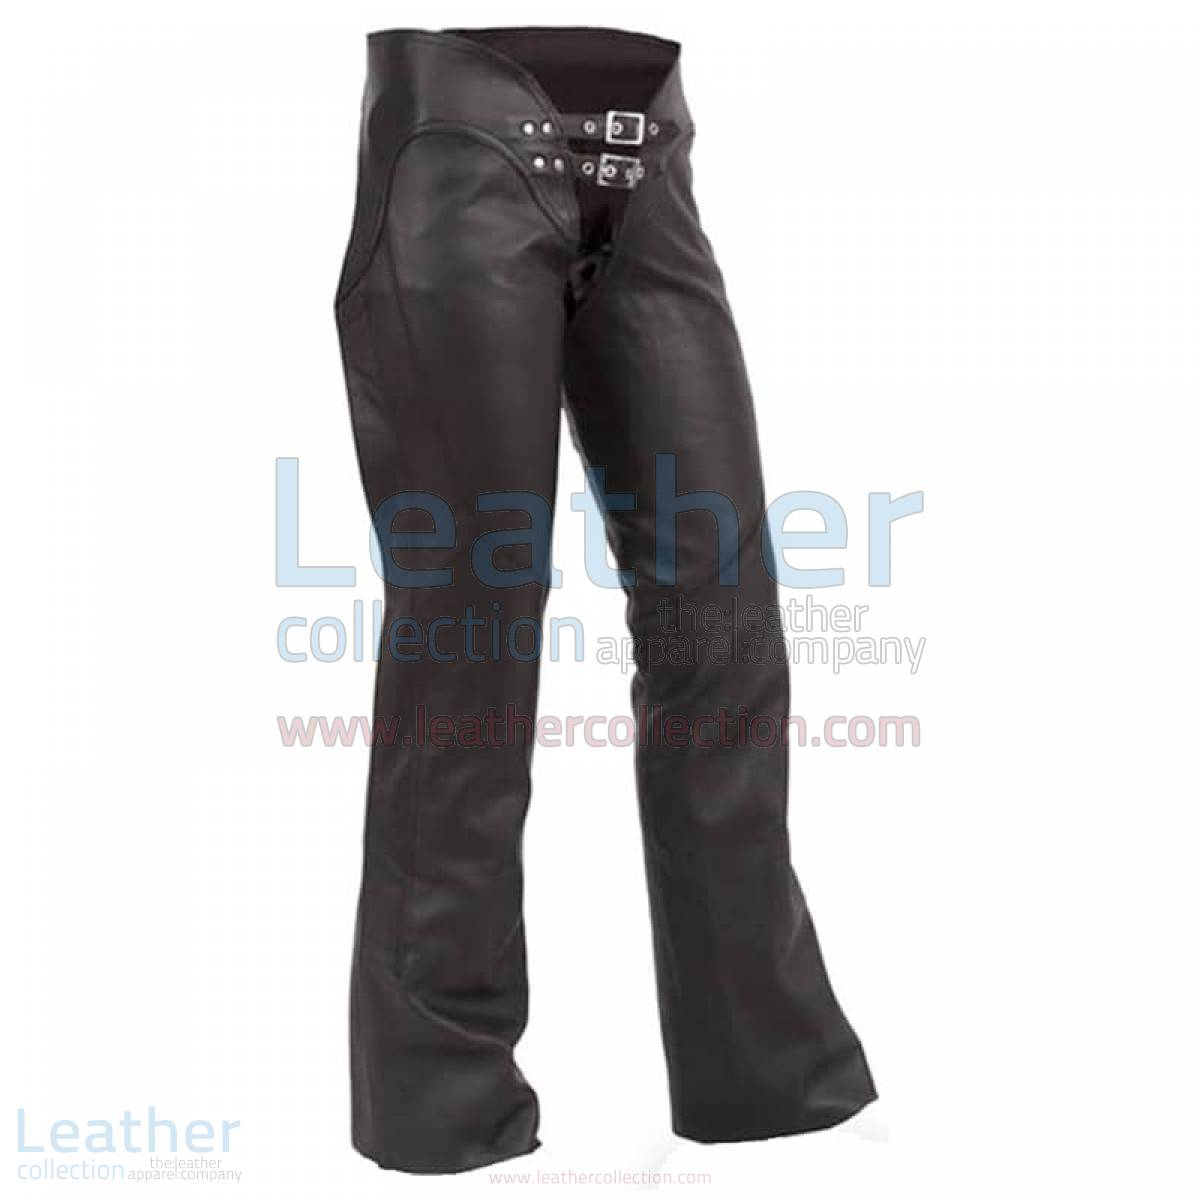 Double Belted Ladies Leather Chaps